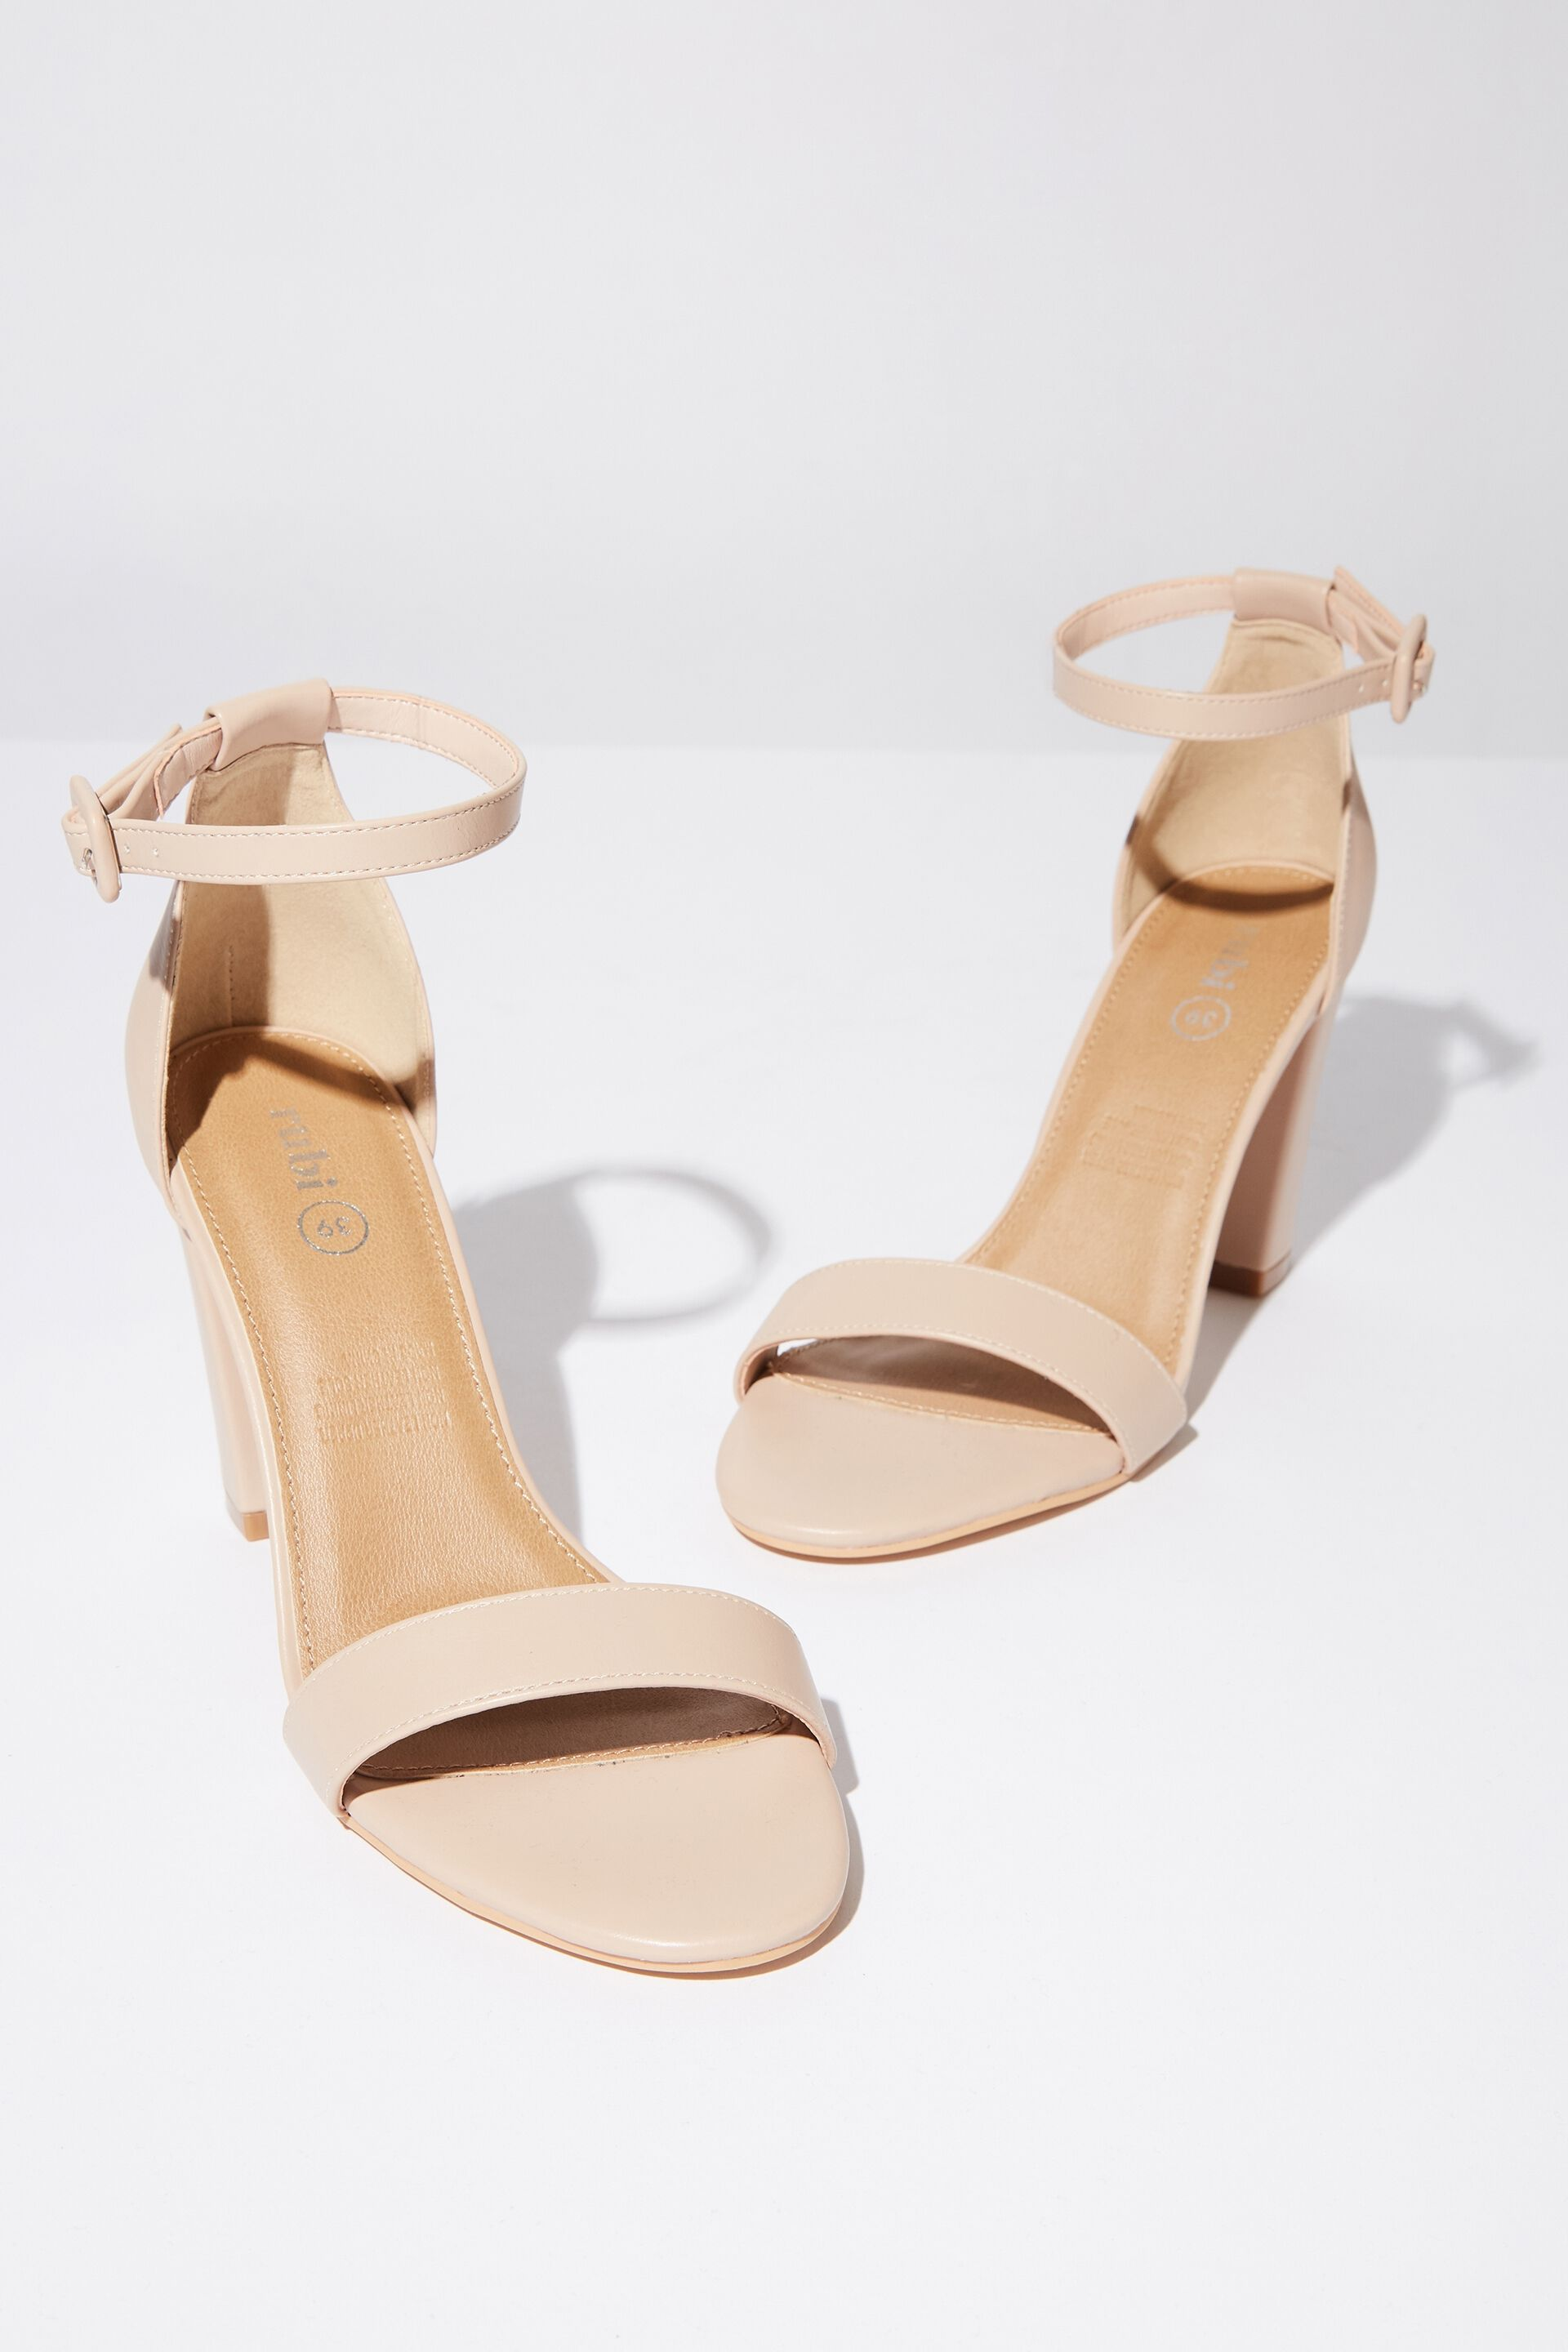 Women's High Heels, Pumps, Stilettos & Wedges | Cotton On